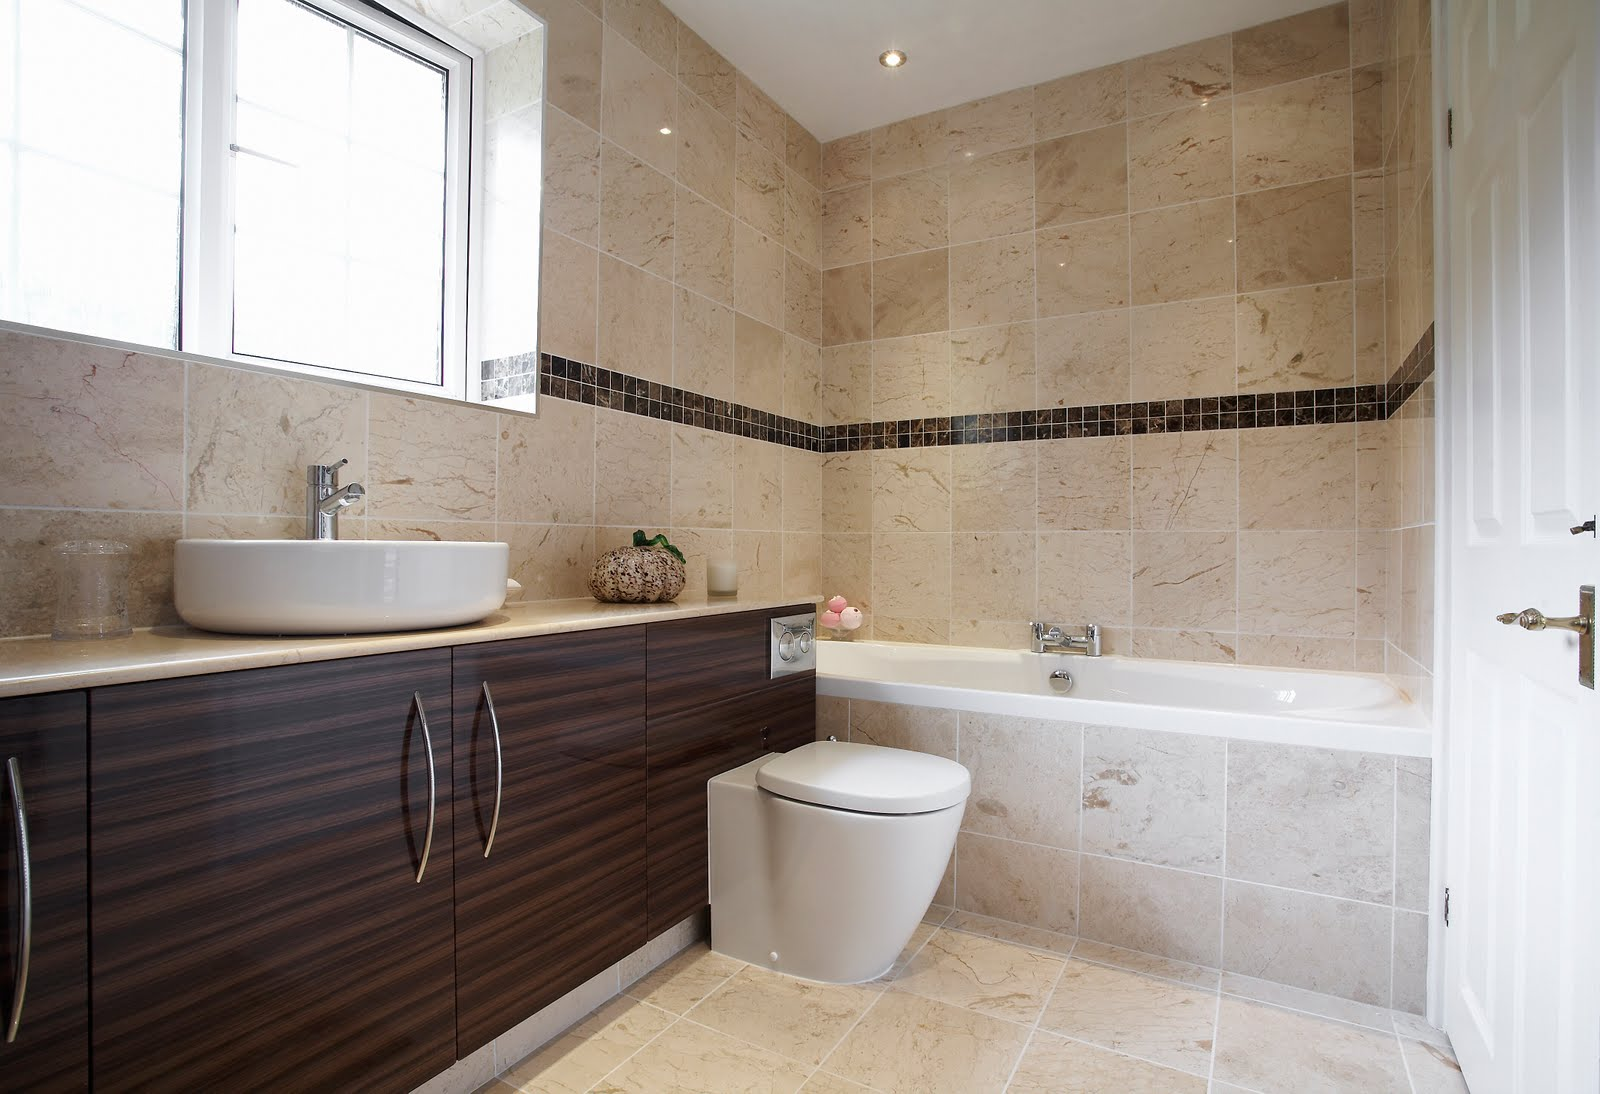 Cymru kitchens ltd cymru kitchens bathrooms for Toilet designs pictures